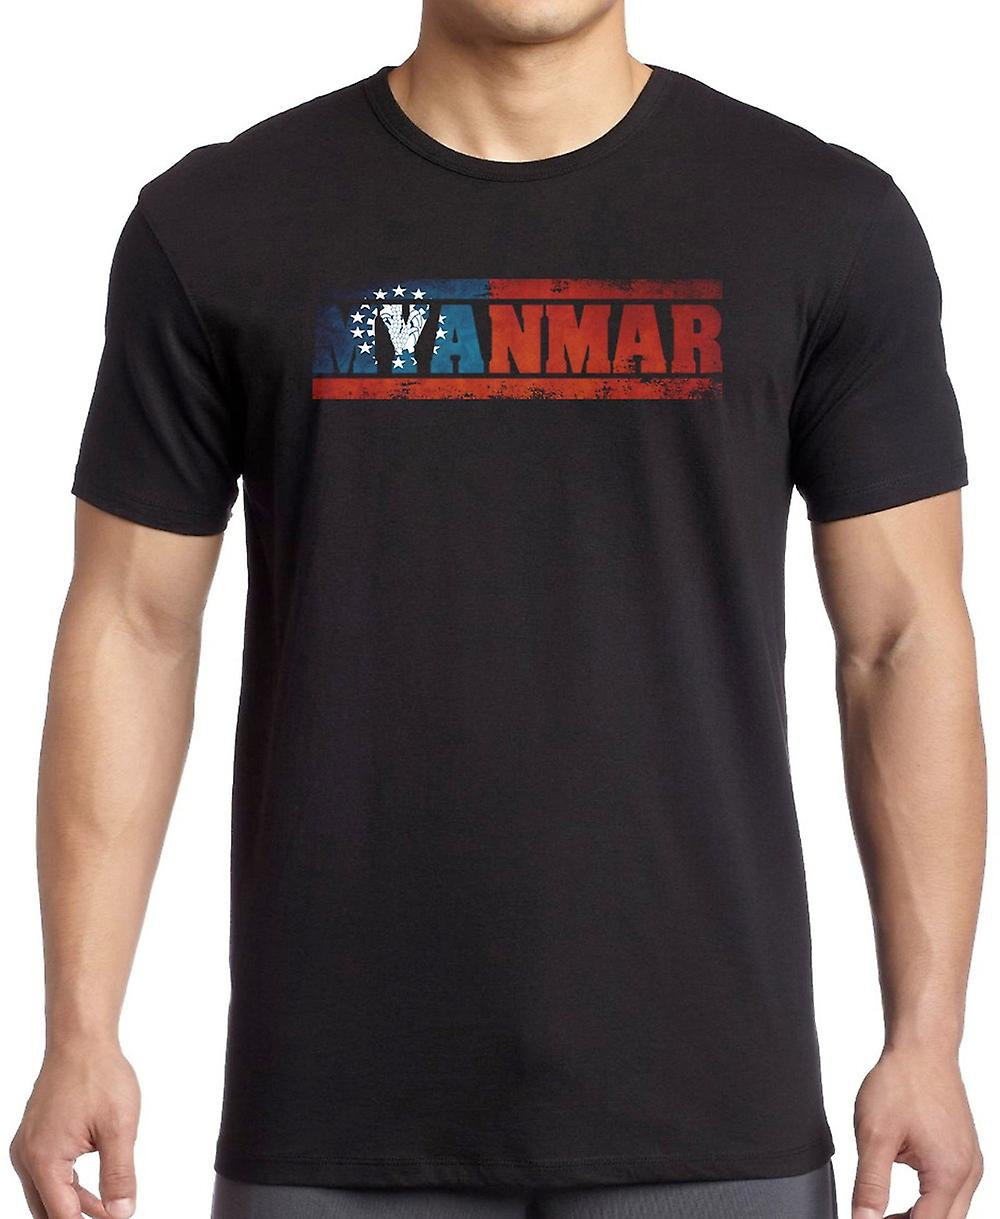 Myanmar Burma Burmese Flag - Words T Shirt